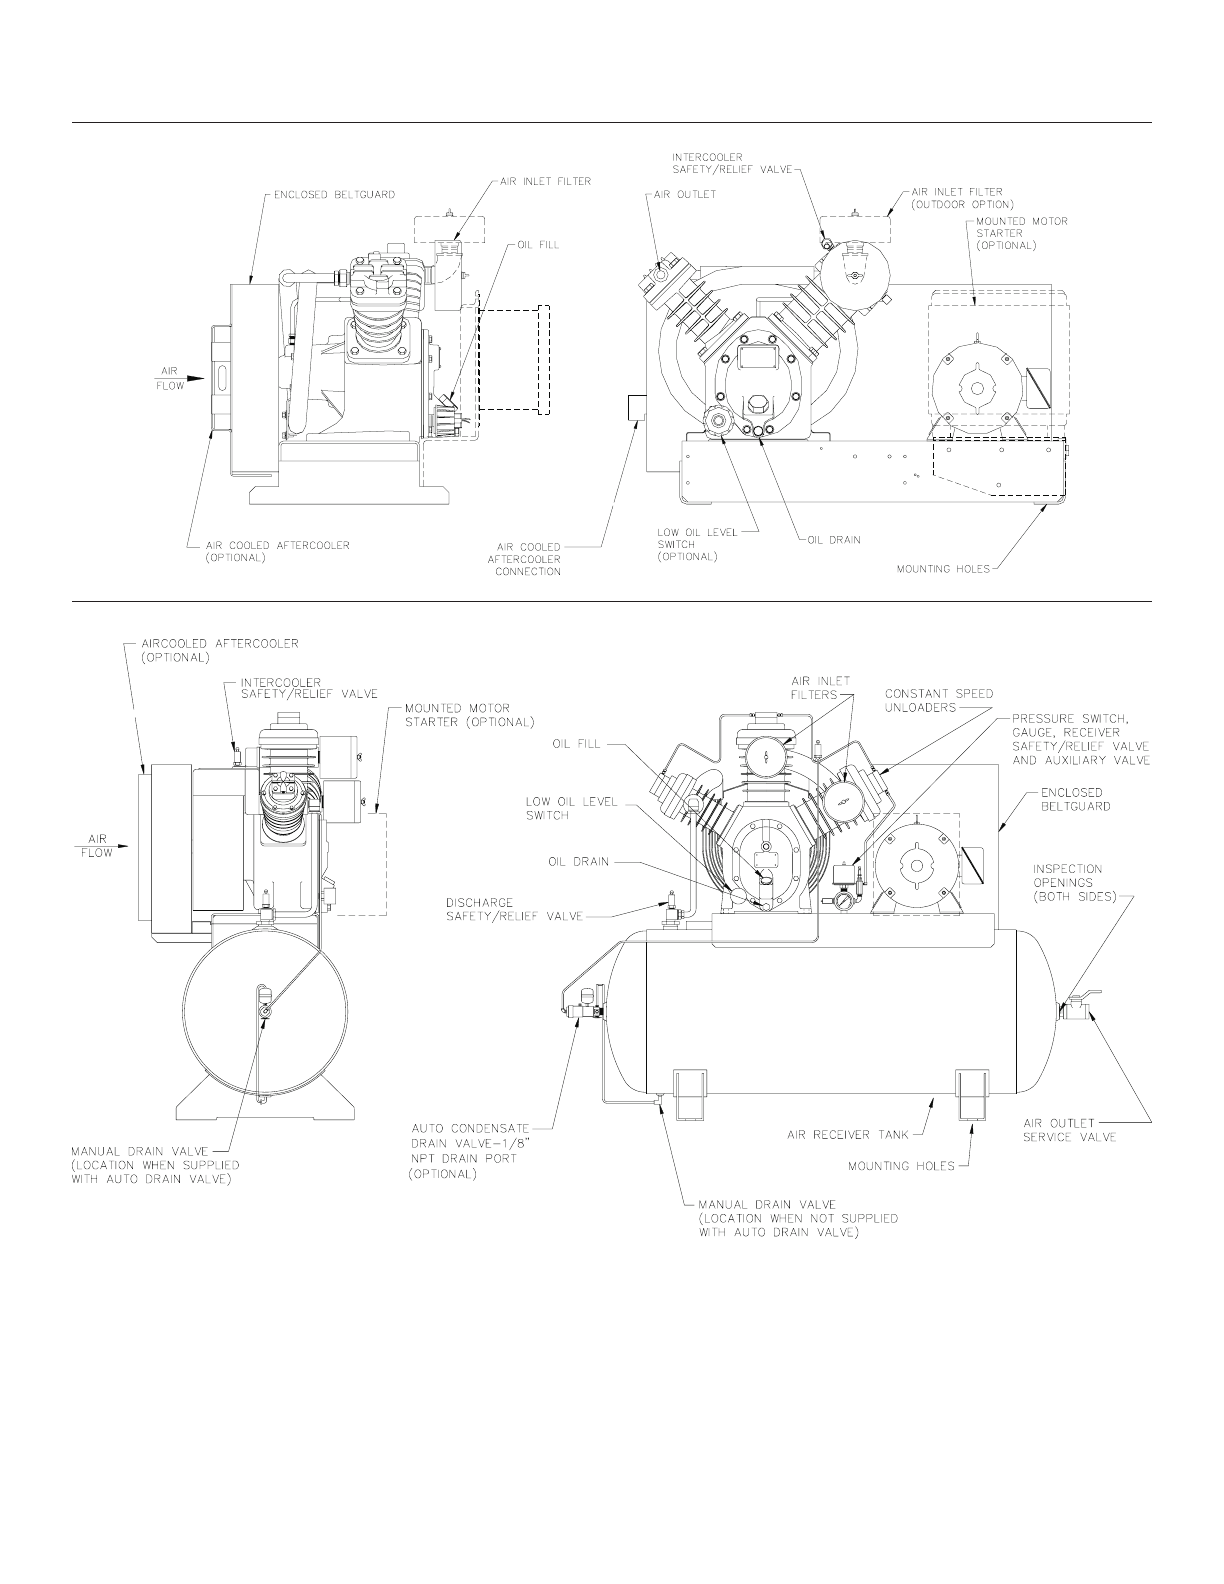 Download Ingersoll-Rand Air Compressor 15T manual and user